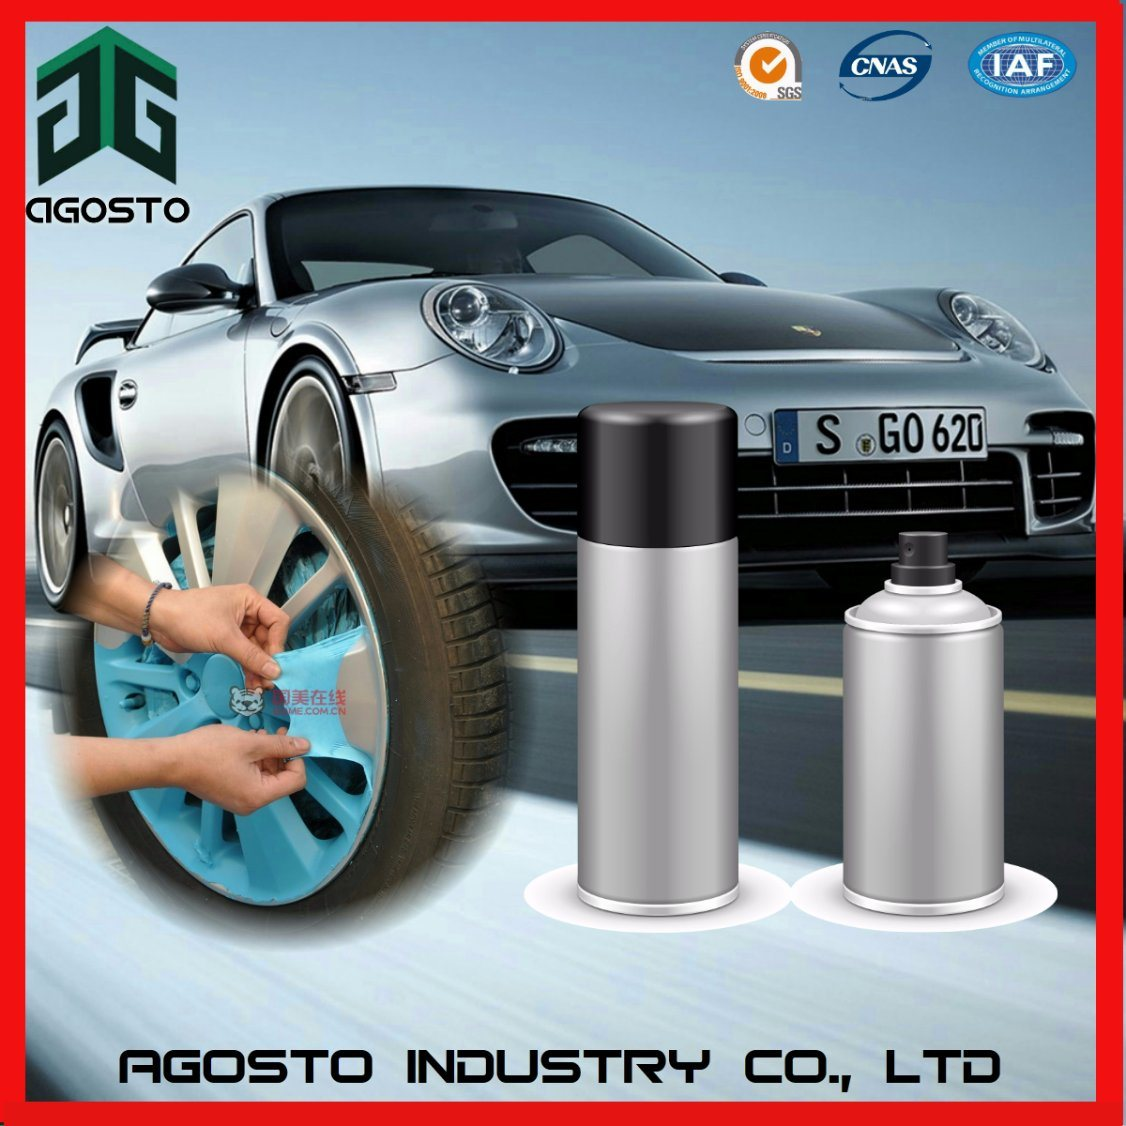 China Anti-Corrosion Plasti DIP Spray Coating for Auuto